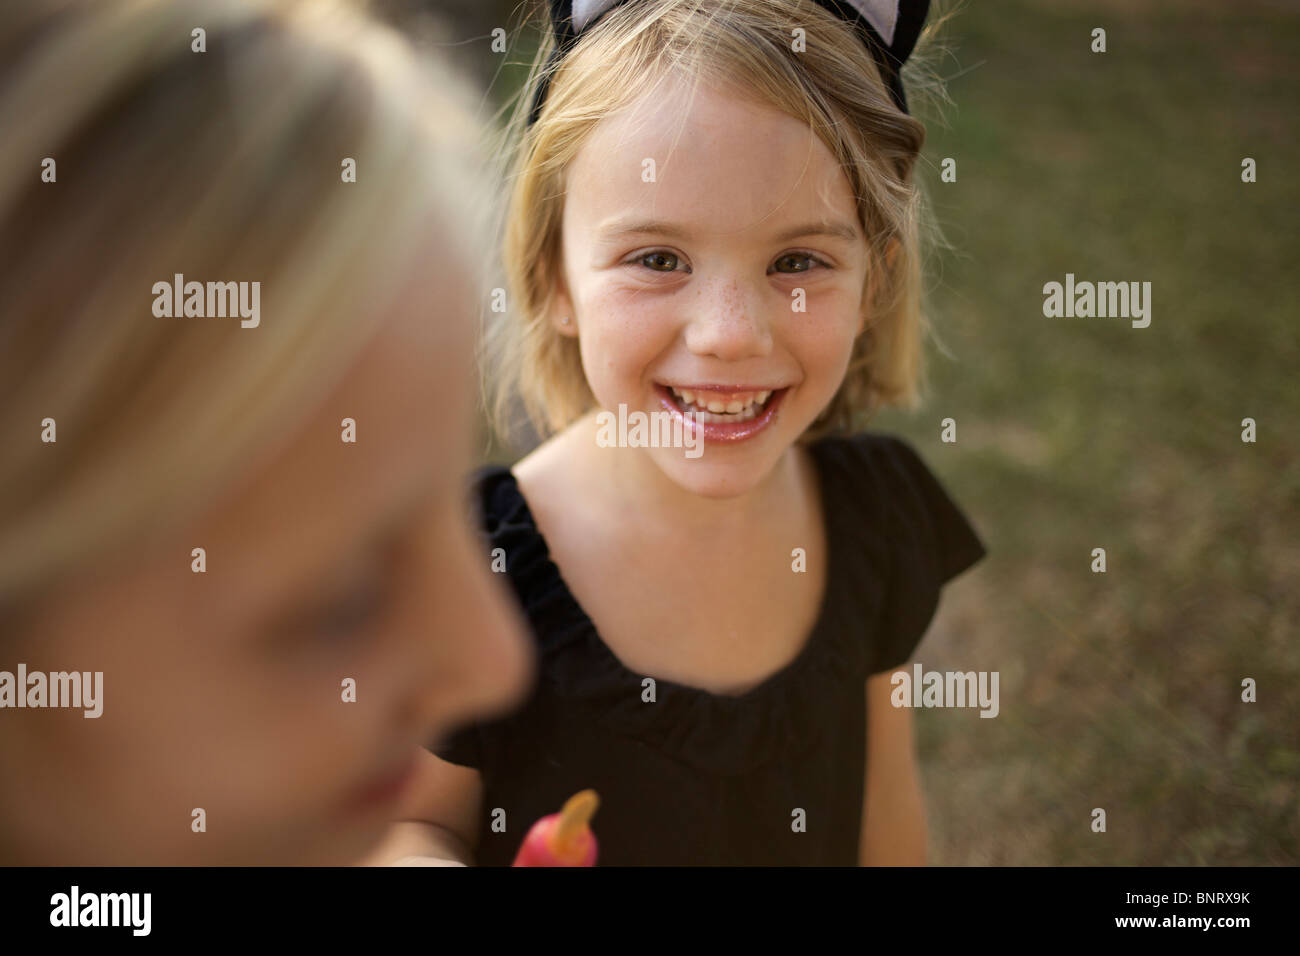 Girl holding her cold treat, wearing cat ears, looks at the camera and smiles. - Stock Image